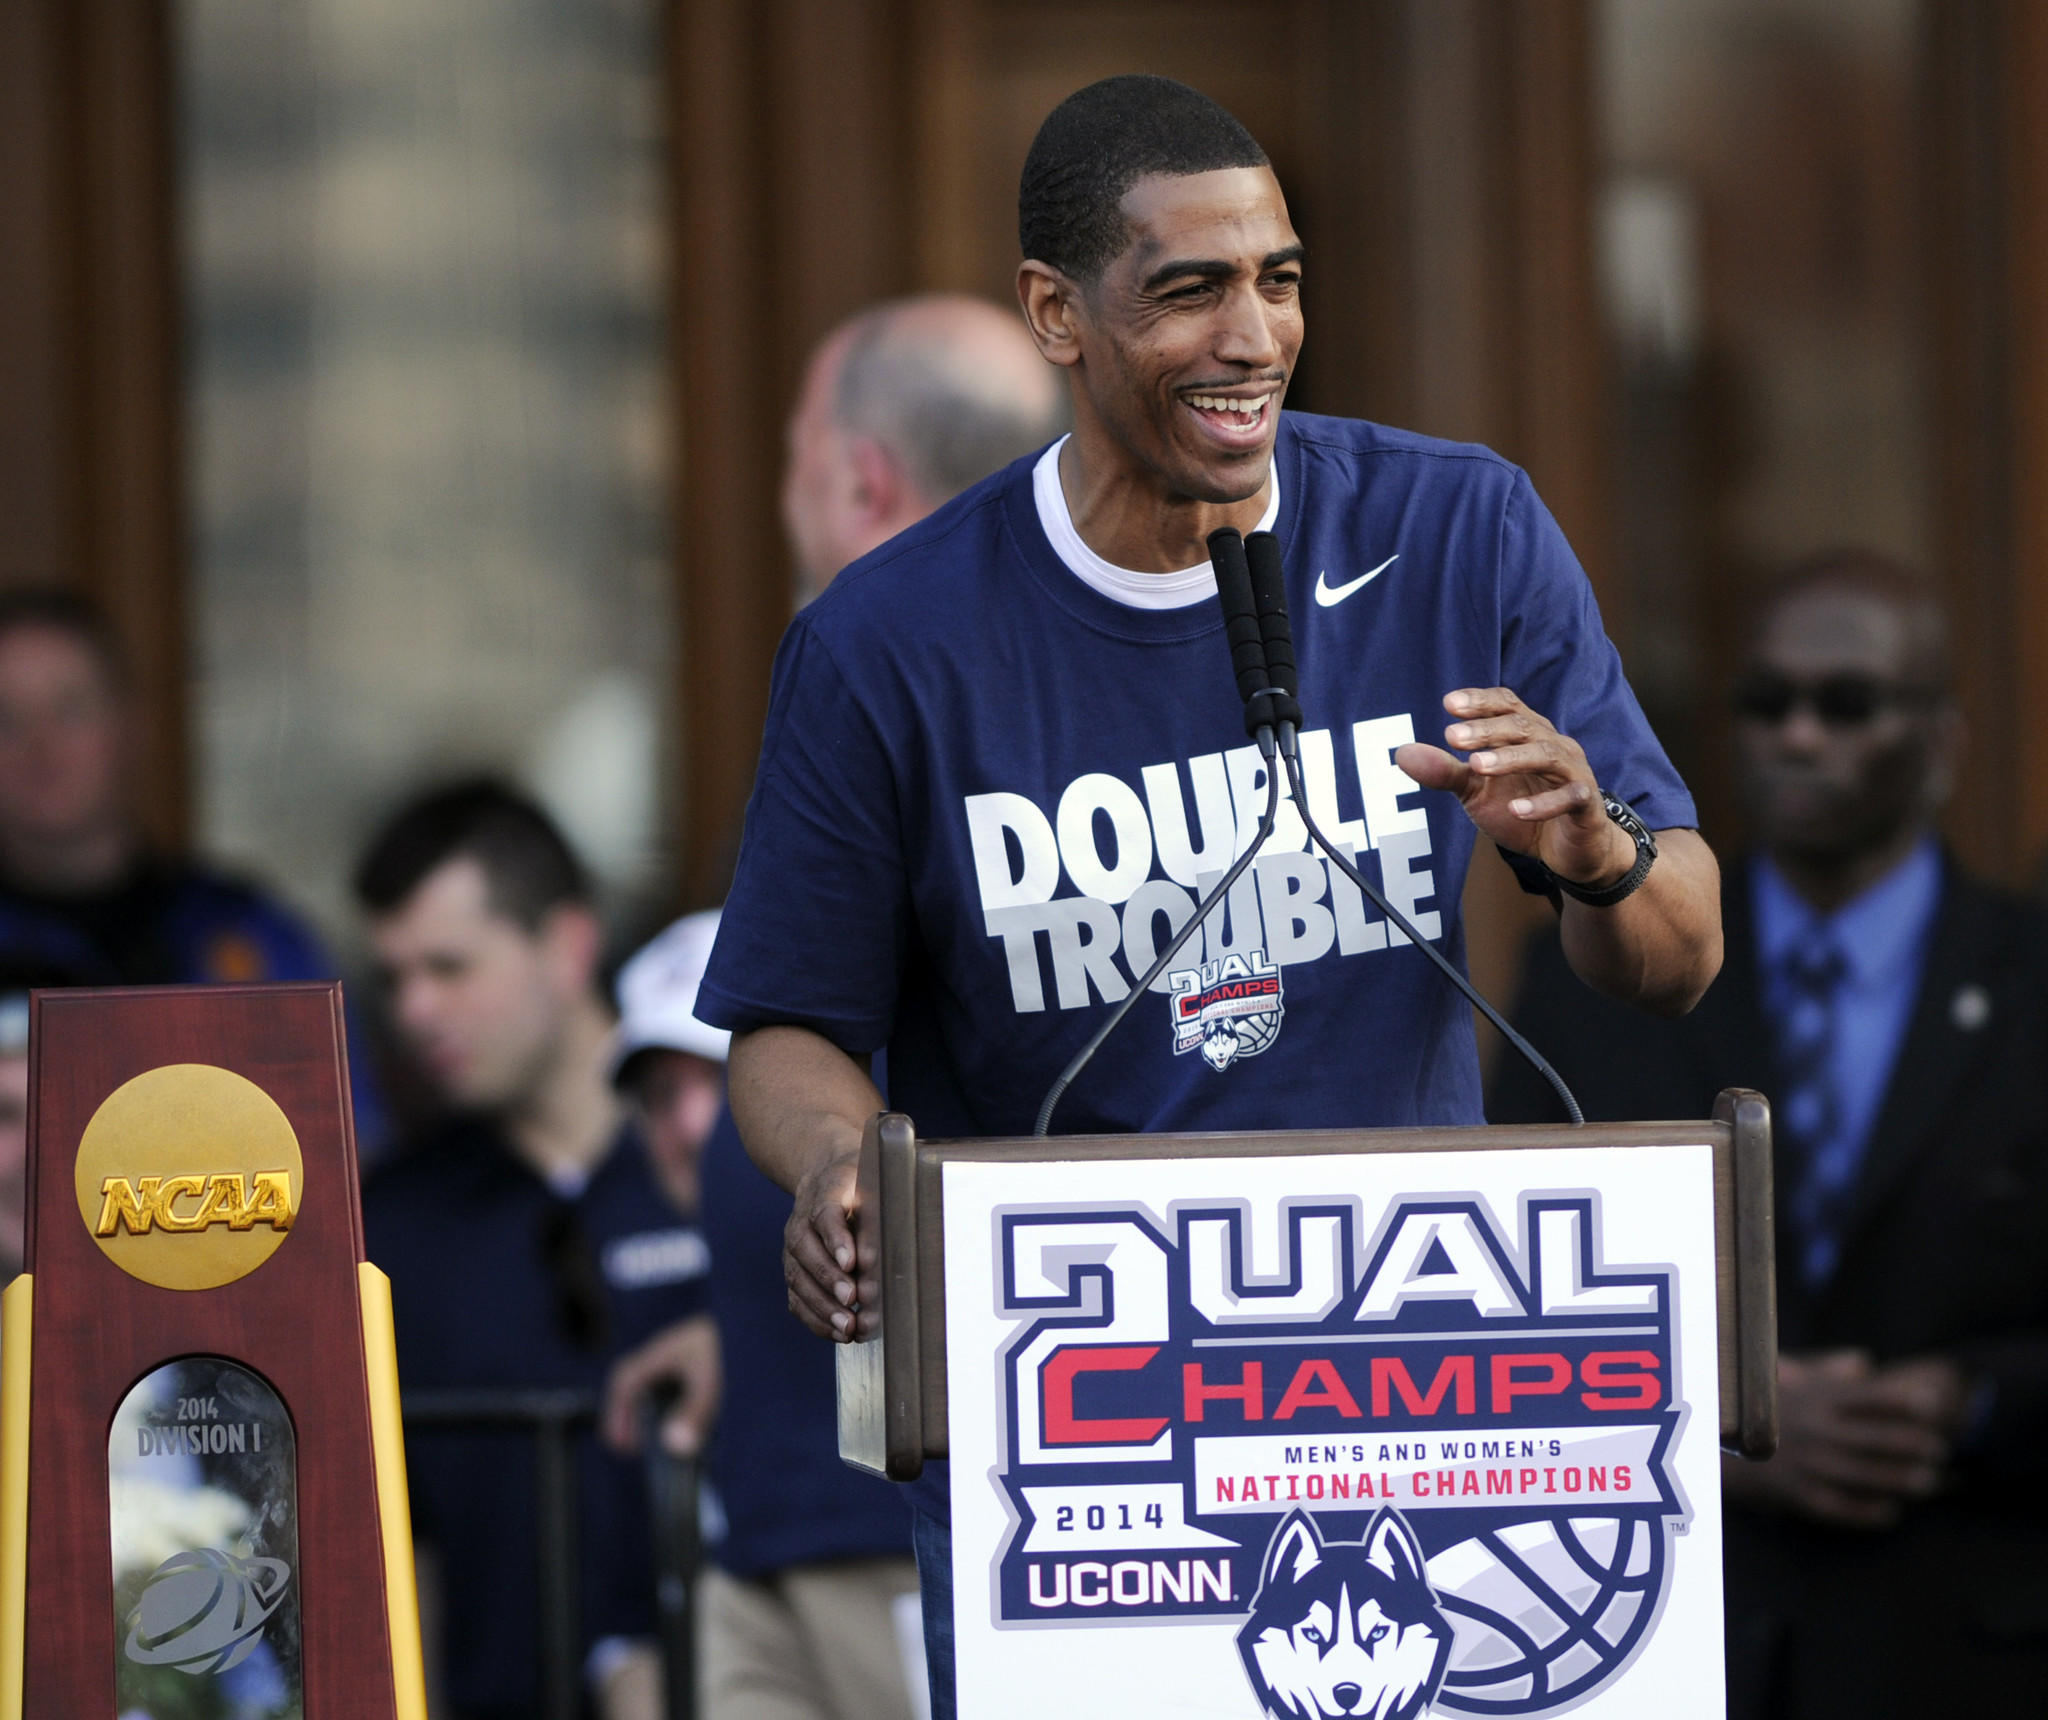 UConn men's basketball coach Kevin Ollie saluted the thousands gathered for a rally at the State Capitol in April.